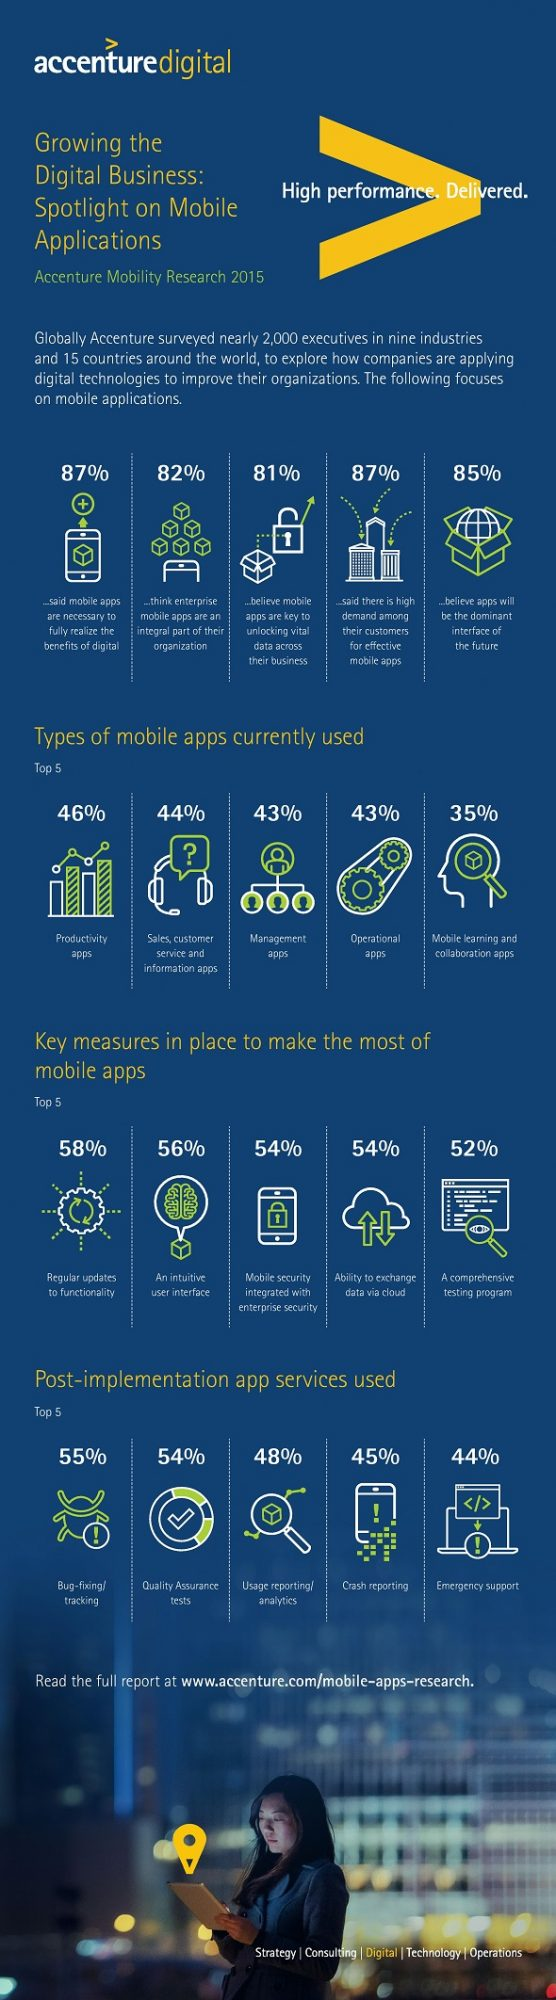 150904 - Mobile Apps Research Infographic FINAL-page-001